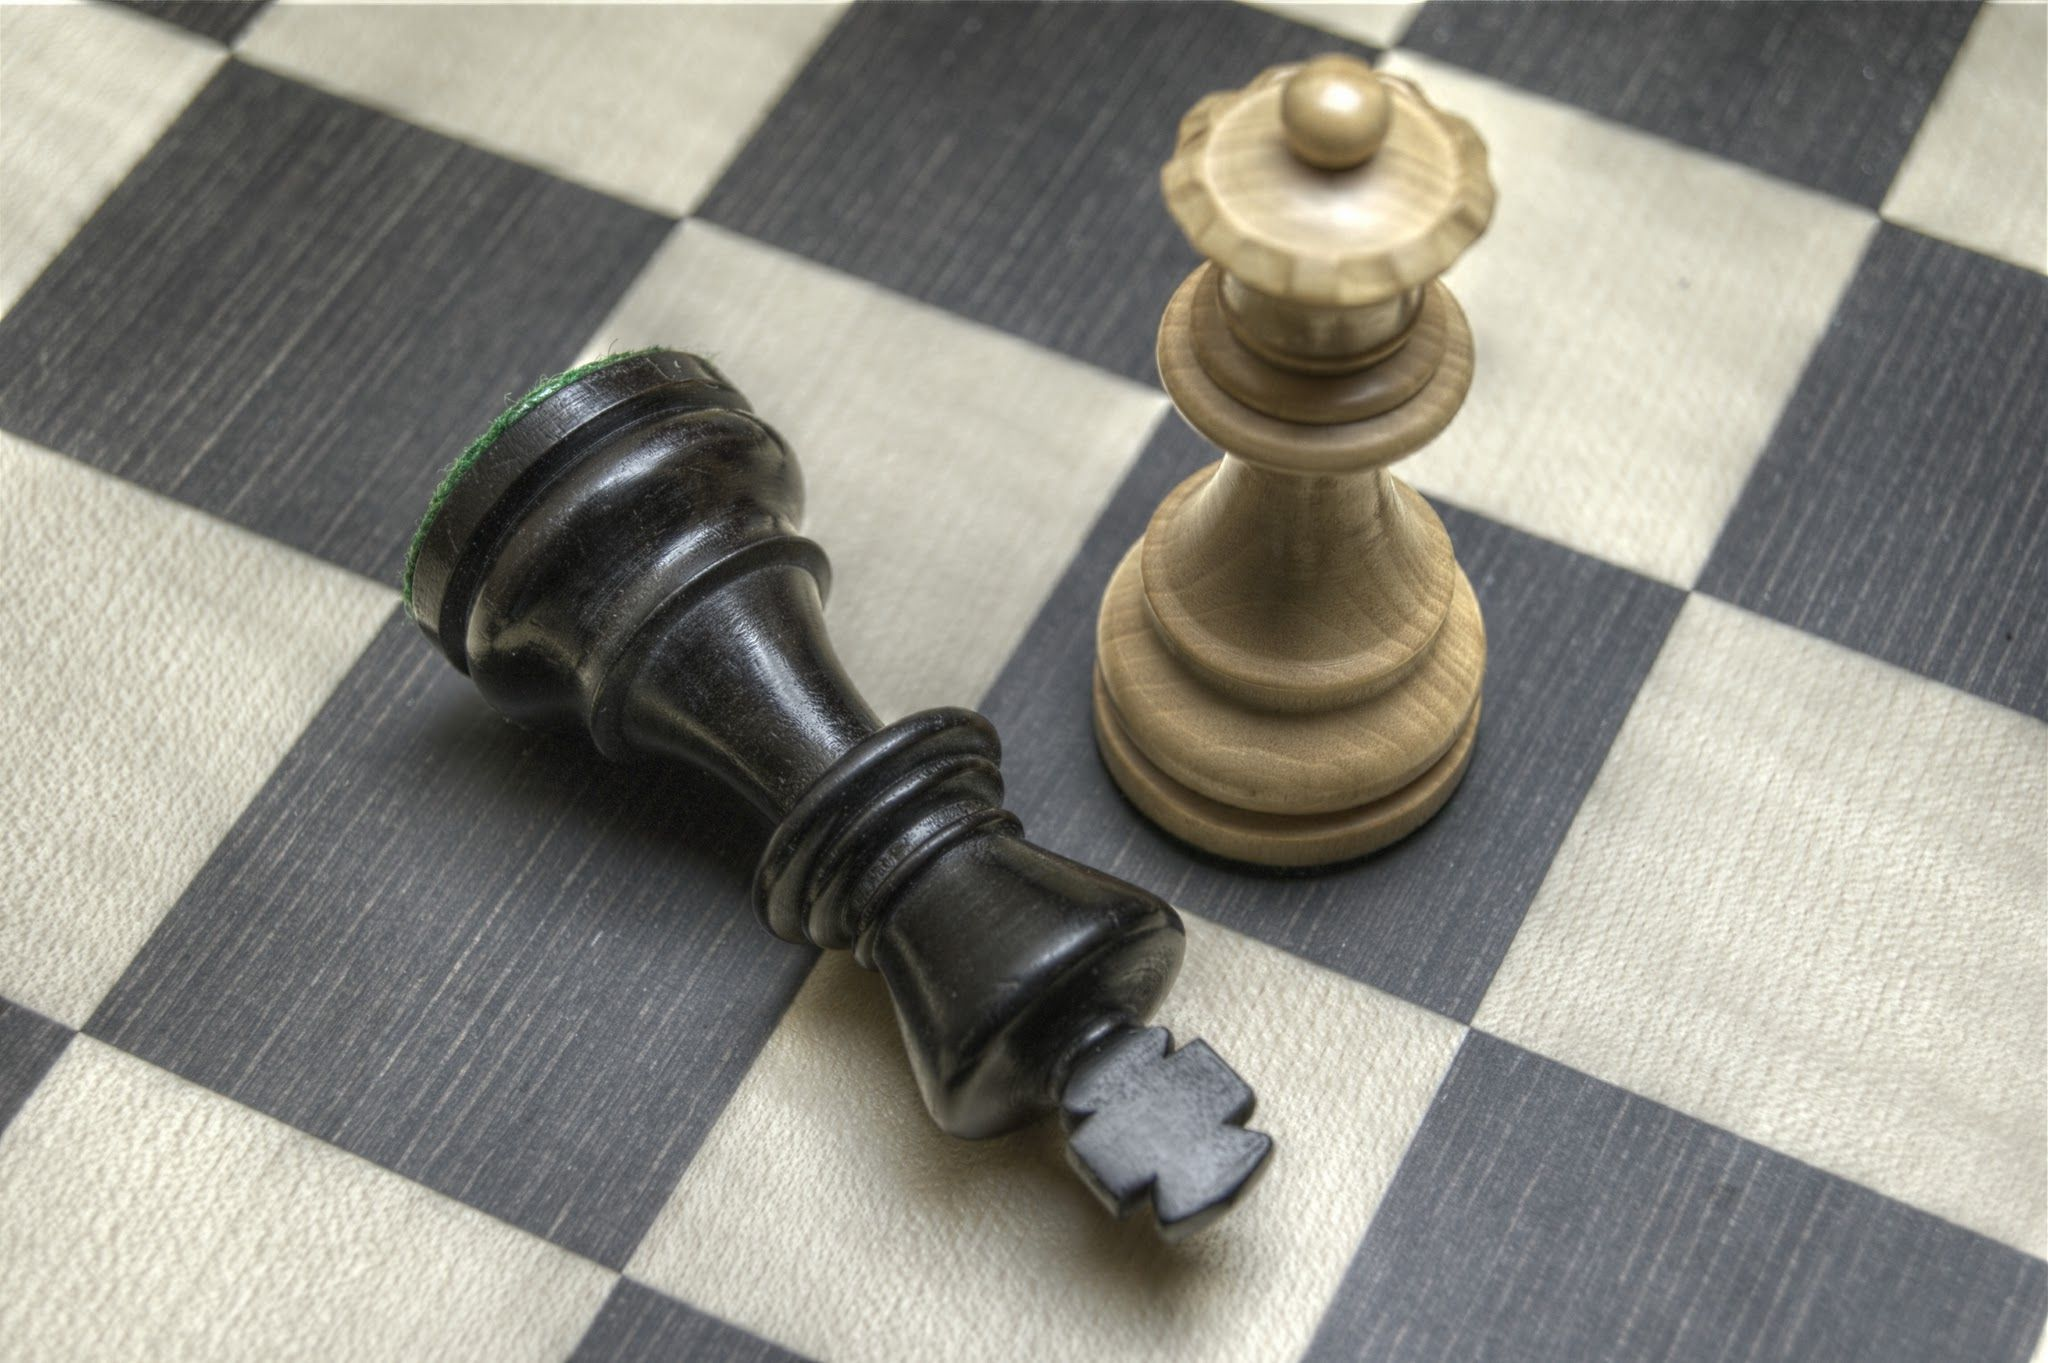 Check Checkmate And Stalemate Chess For Beginners Four Move Diagram